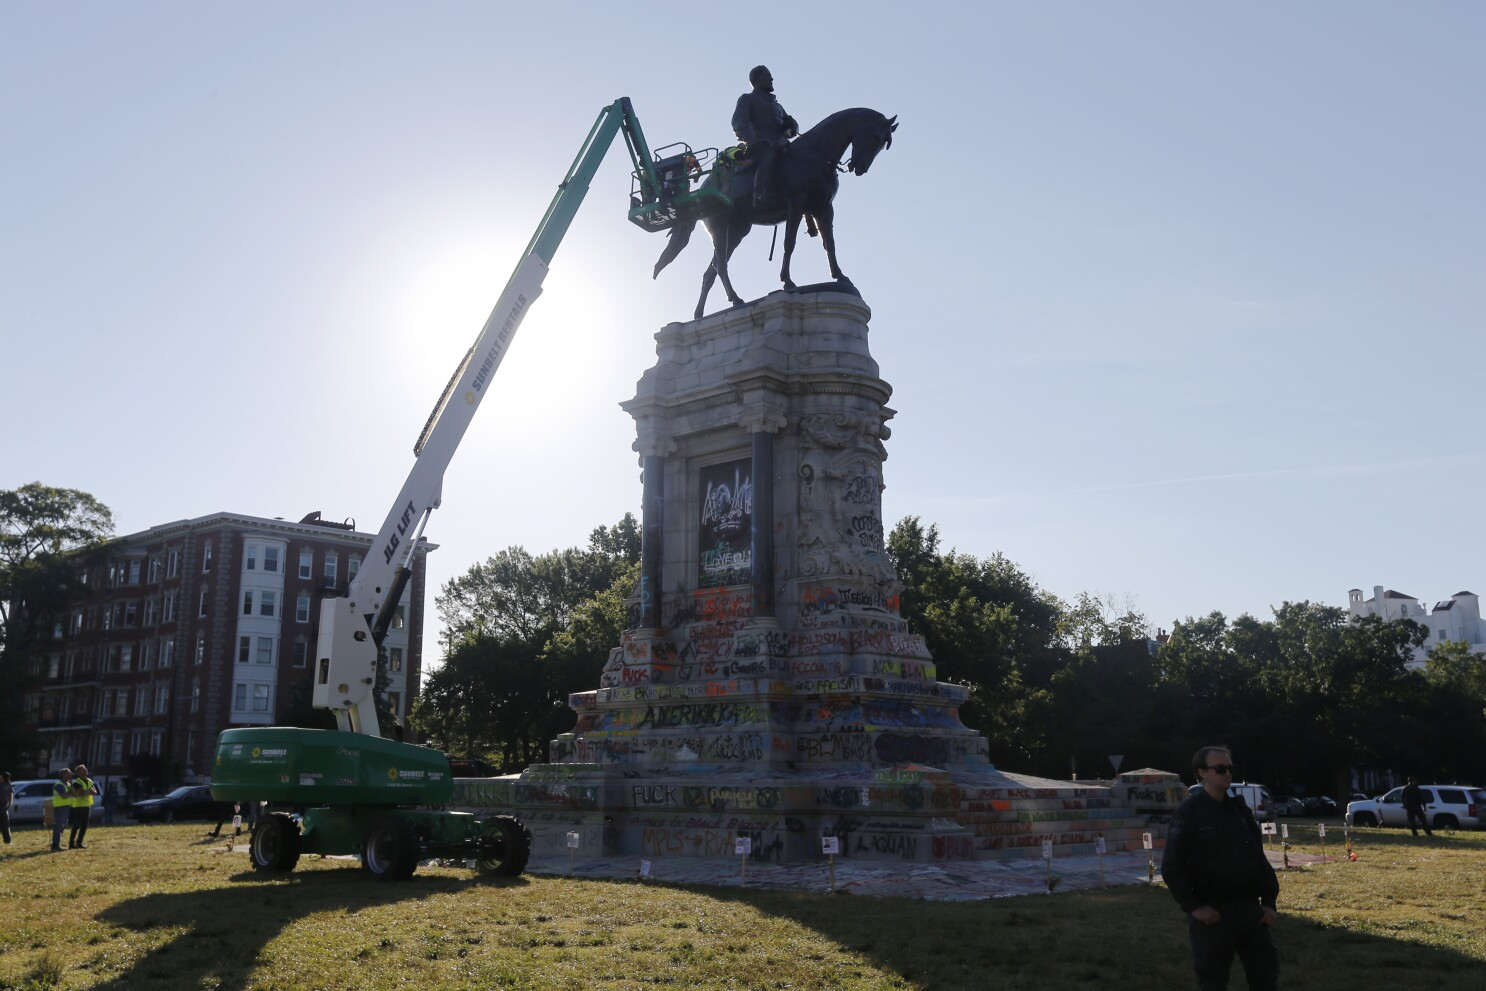 Judge halts removal of Robert E. Lee statue in Richmond, Va. - Los Angeles  Times